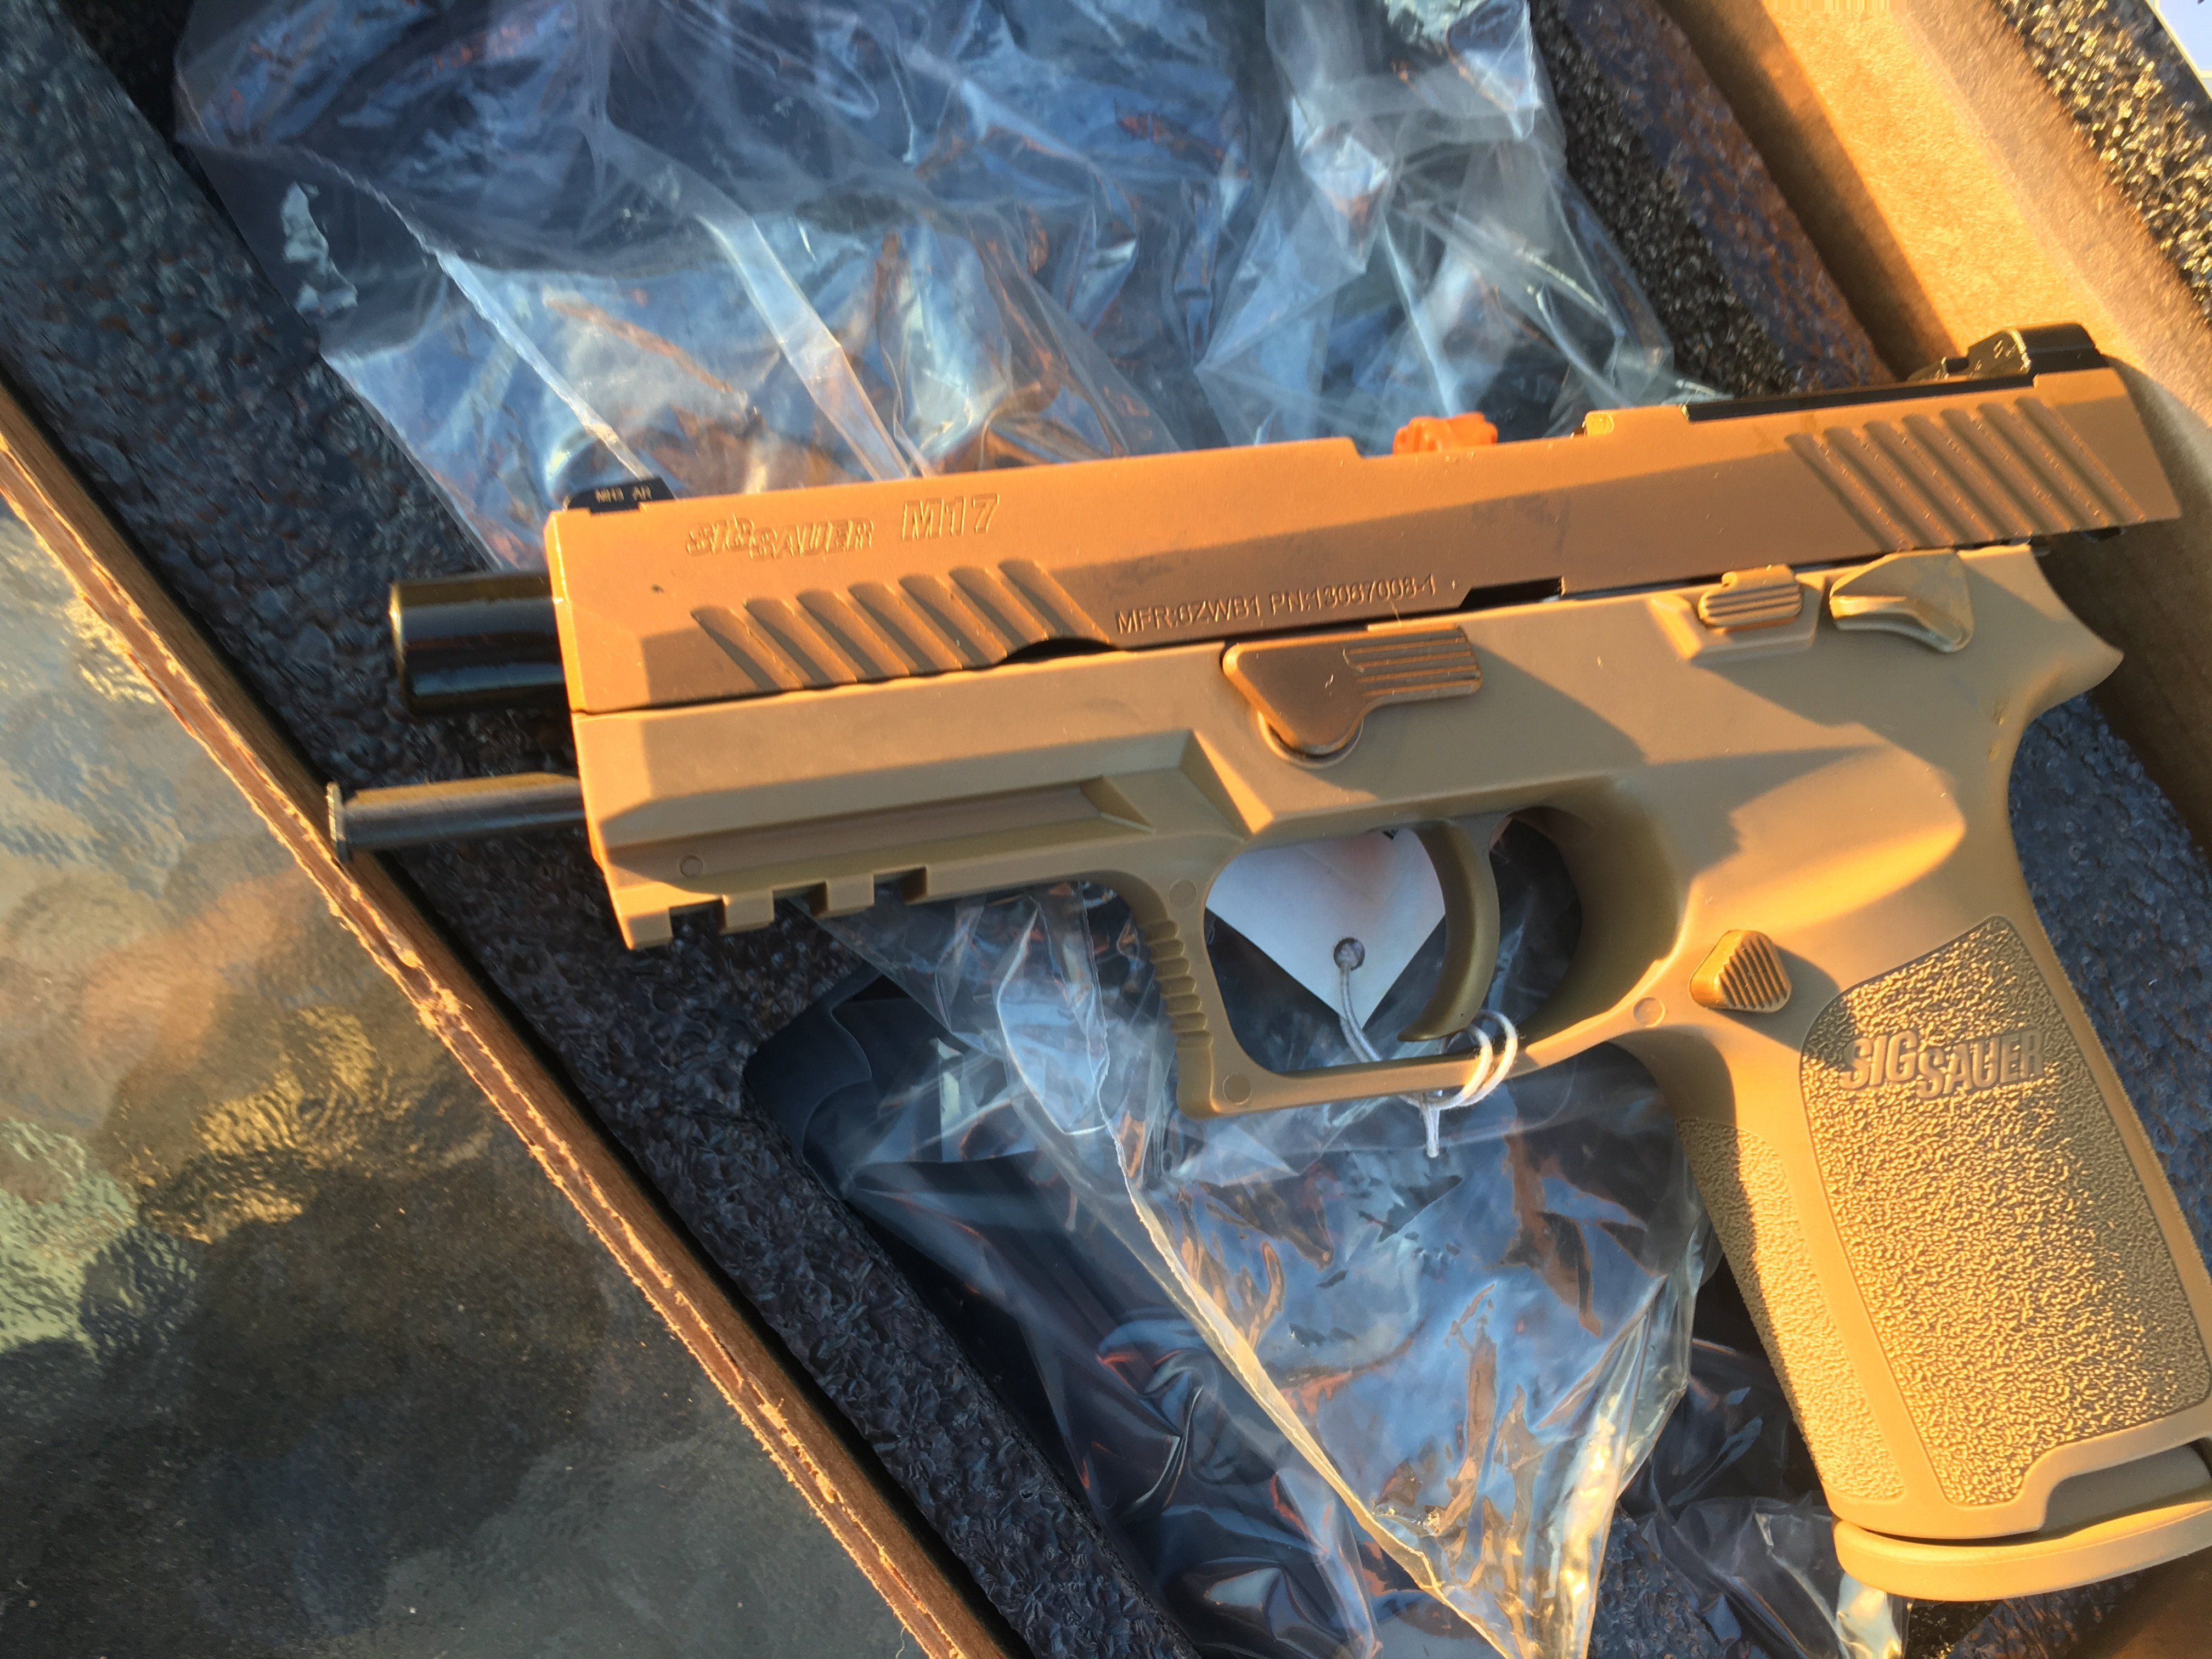 Well I bought an M17 Commemorative  - 1911Forum